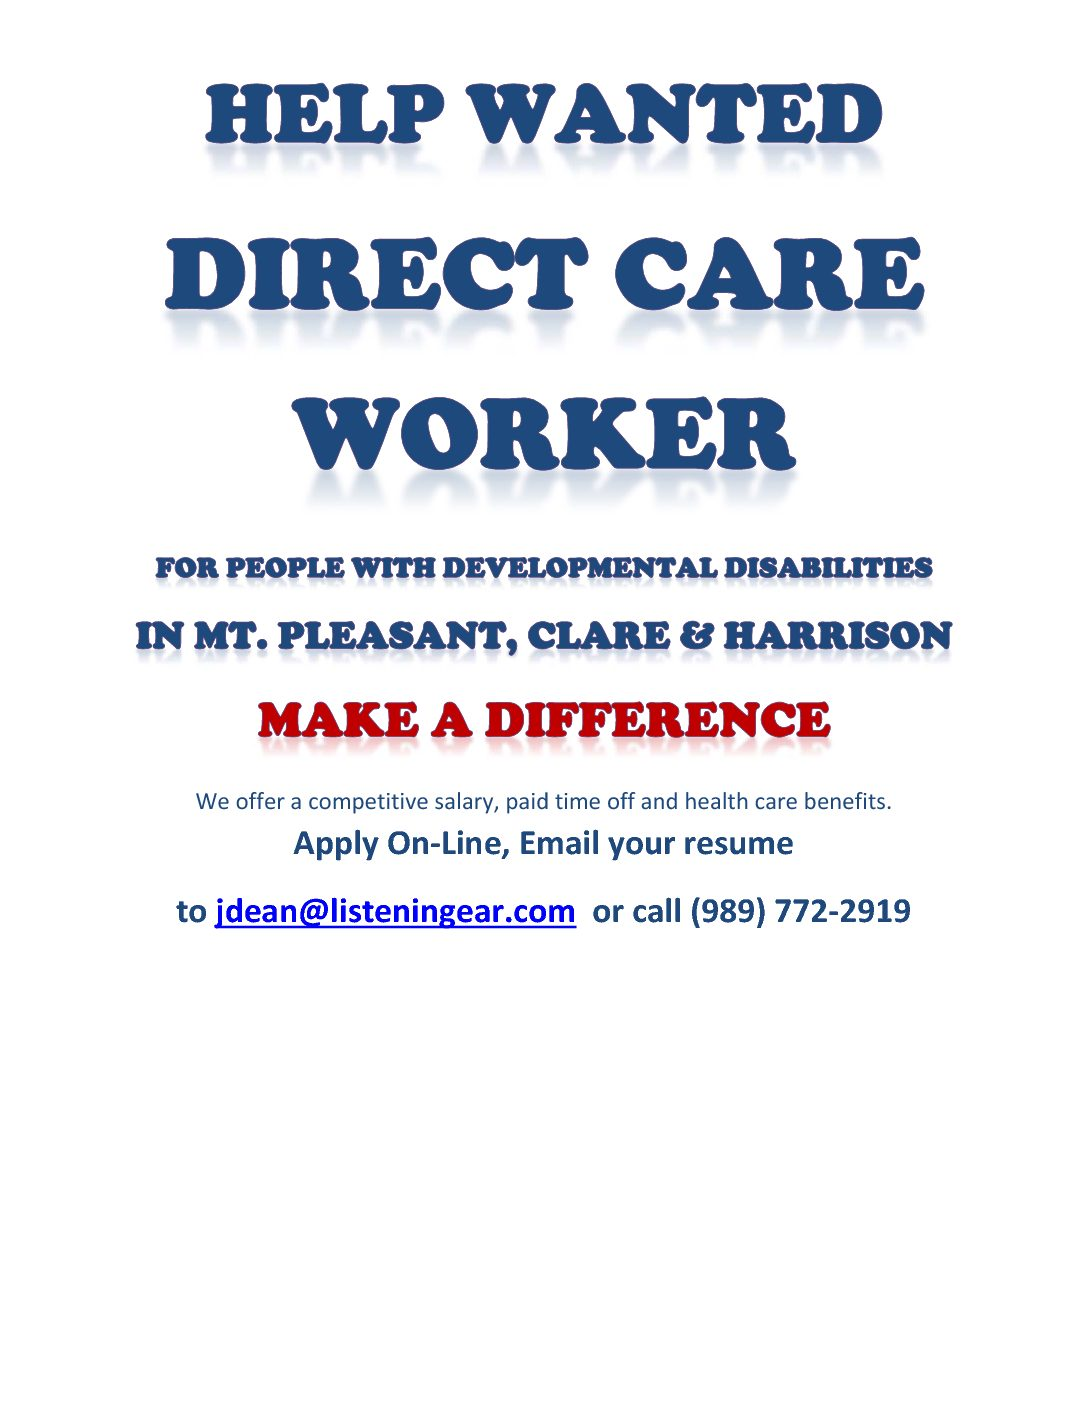 Direct Care Workers Needed